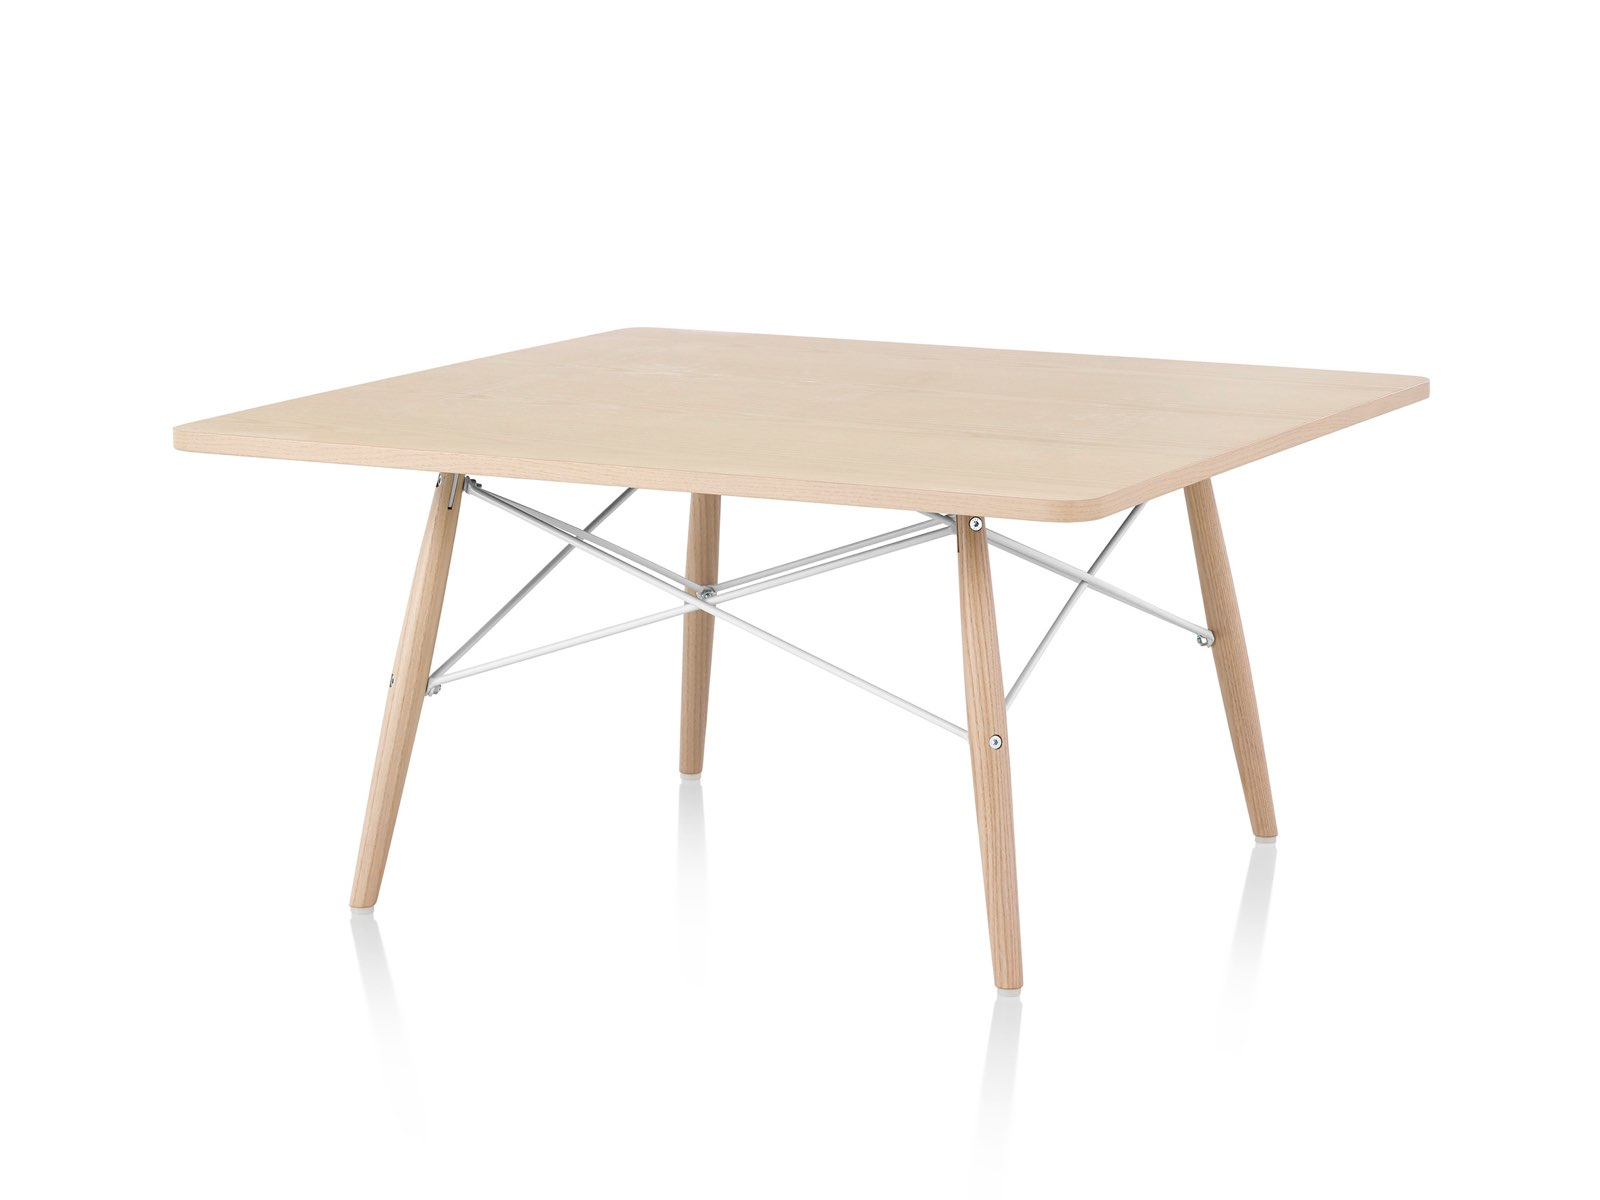 An angled view of an Eames Coffee Table with wood legs, metal cross-struts, and a light wood top.